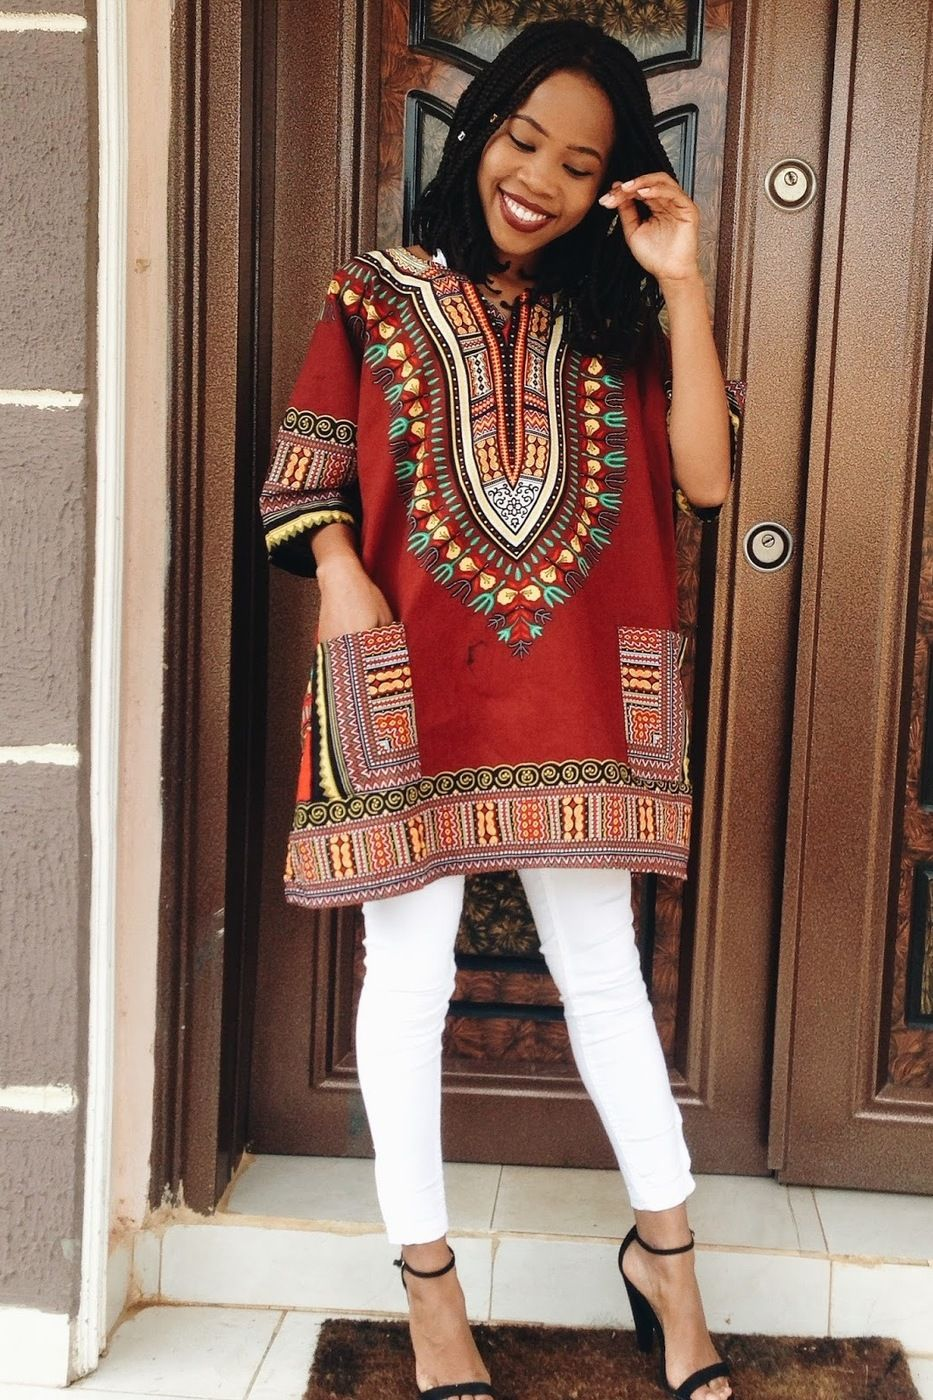 HOW TO STYLE YOUR DASHIKI [[MORE]] HOW TO STYLE YOU